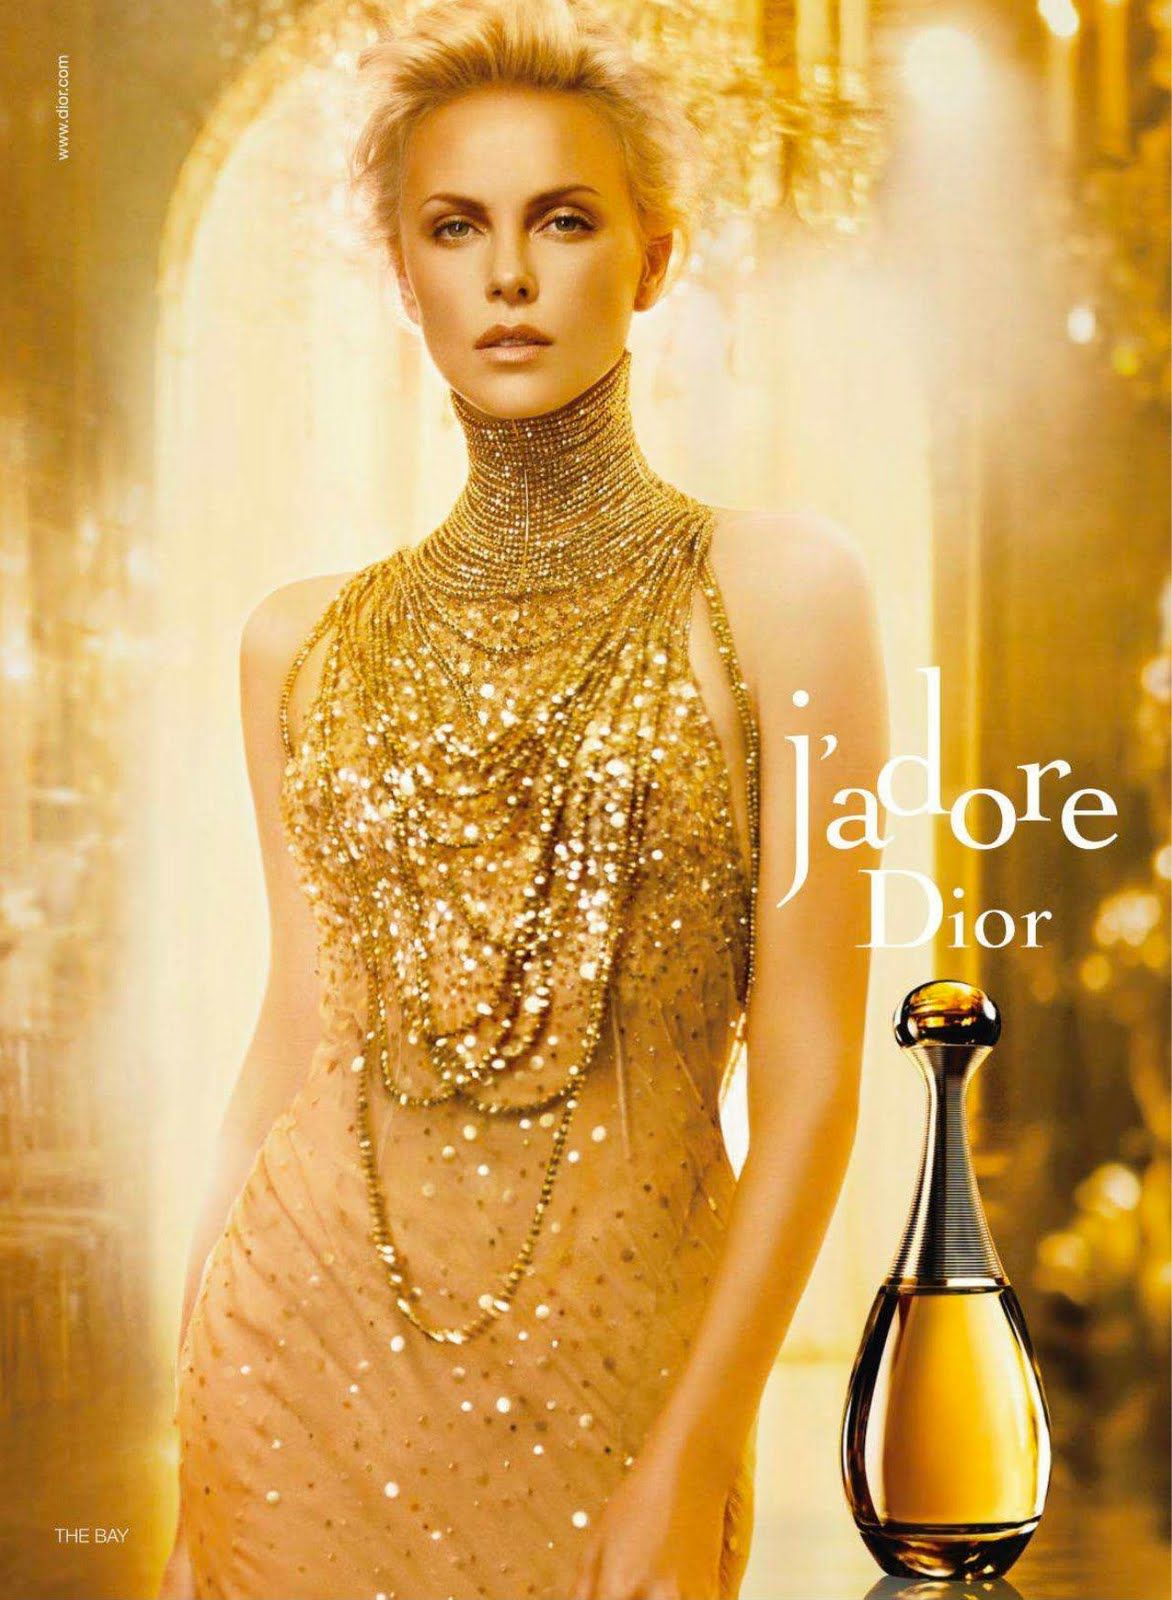 Charlize Theron Dior Blend Charity With Luxury recommend